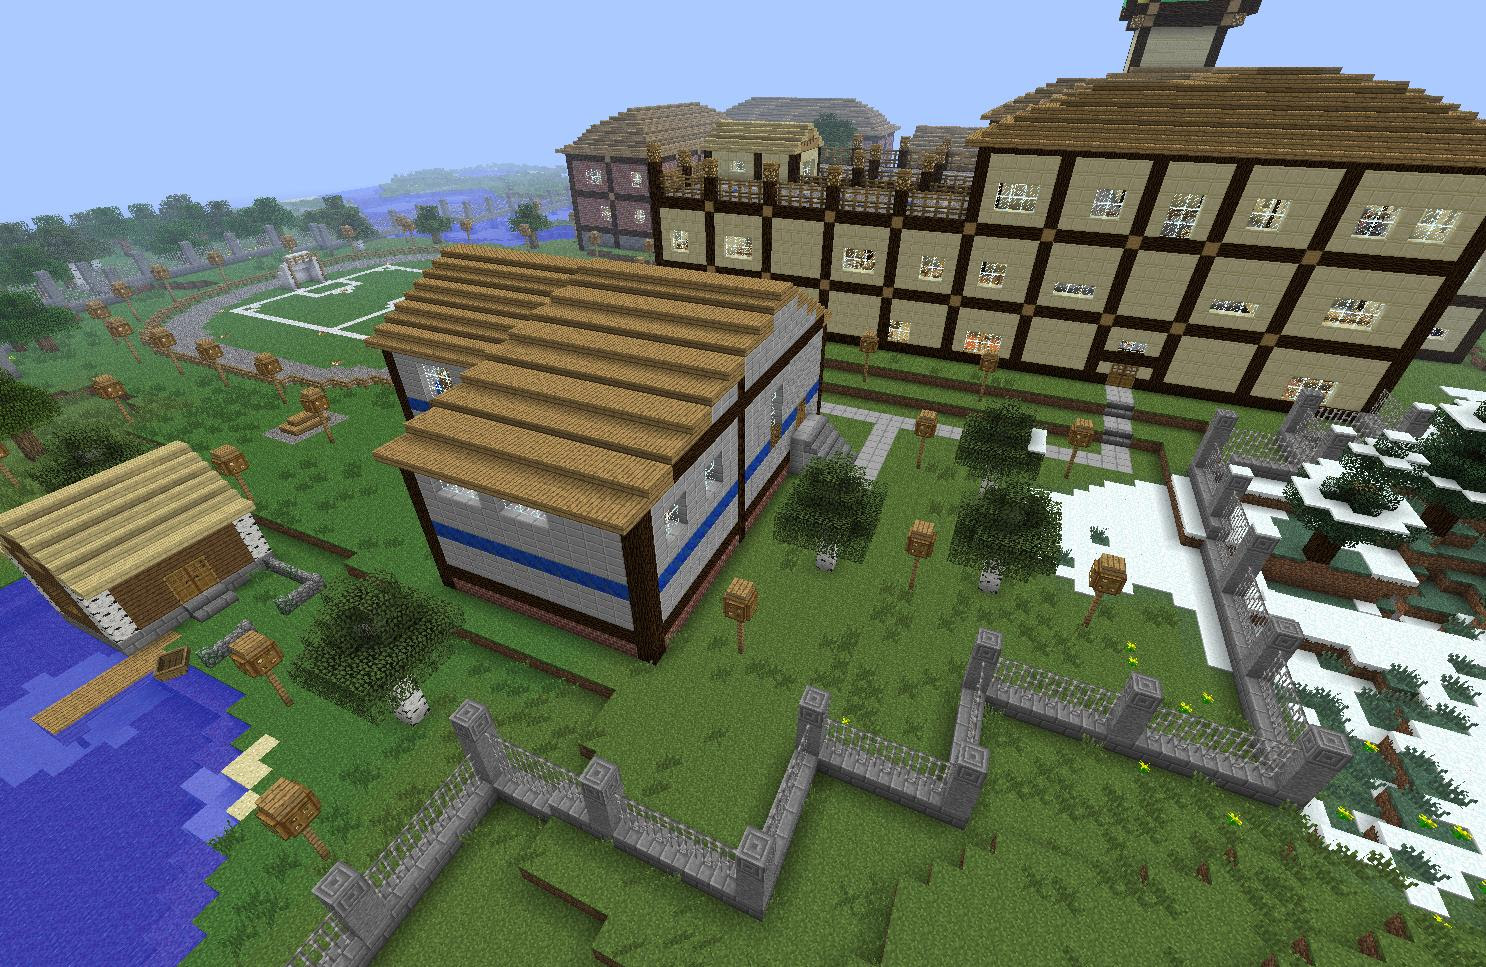 Play store app download: Minecraft college map with dorms download